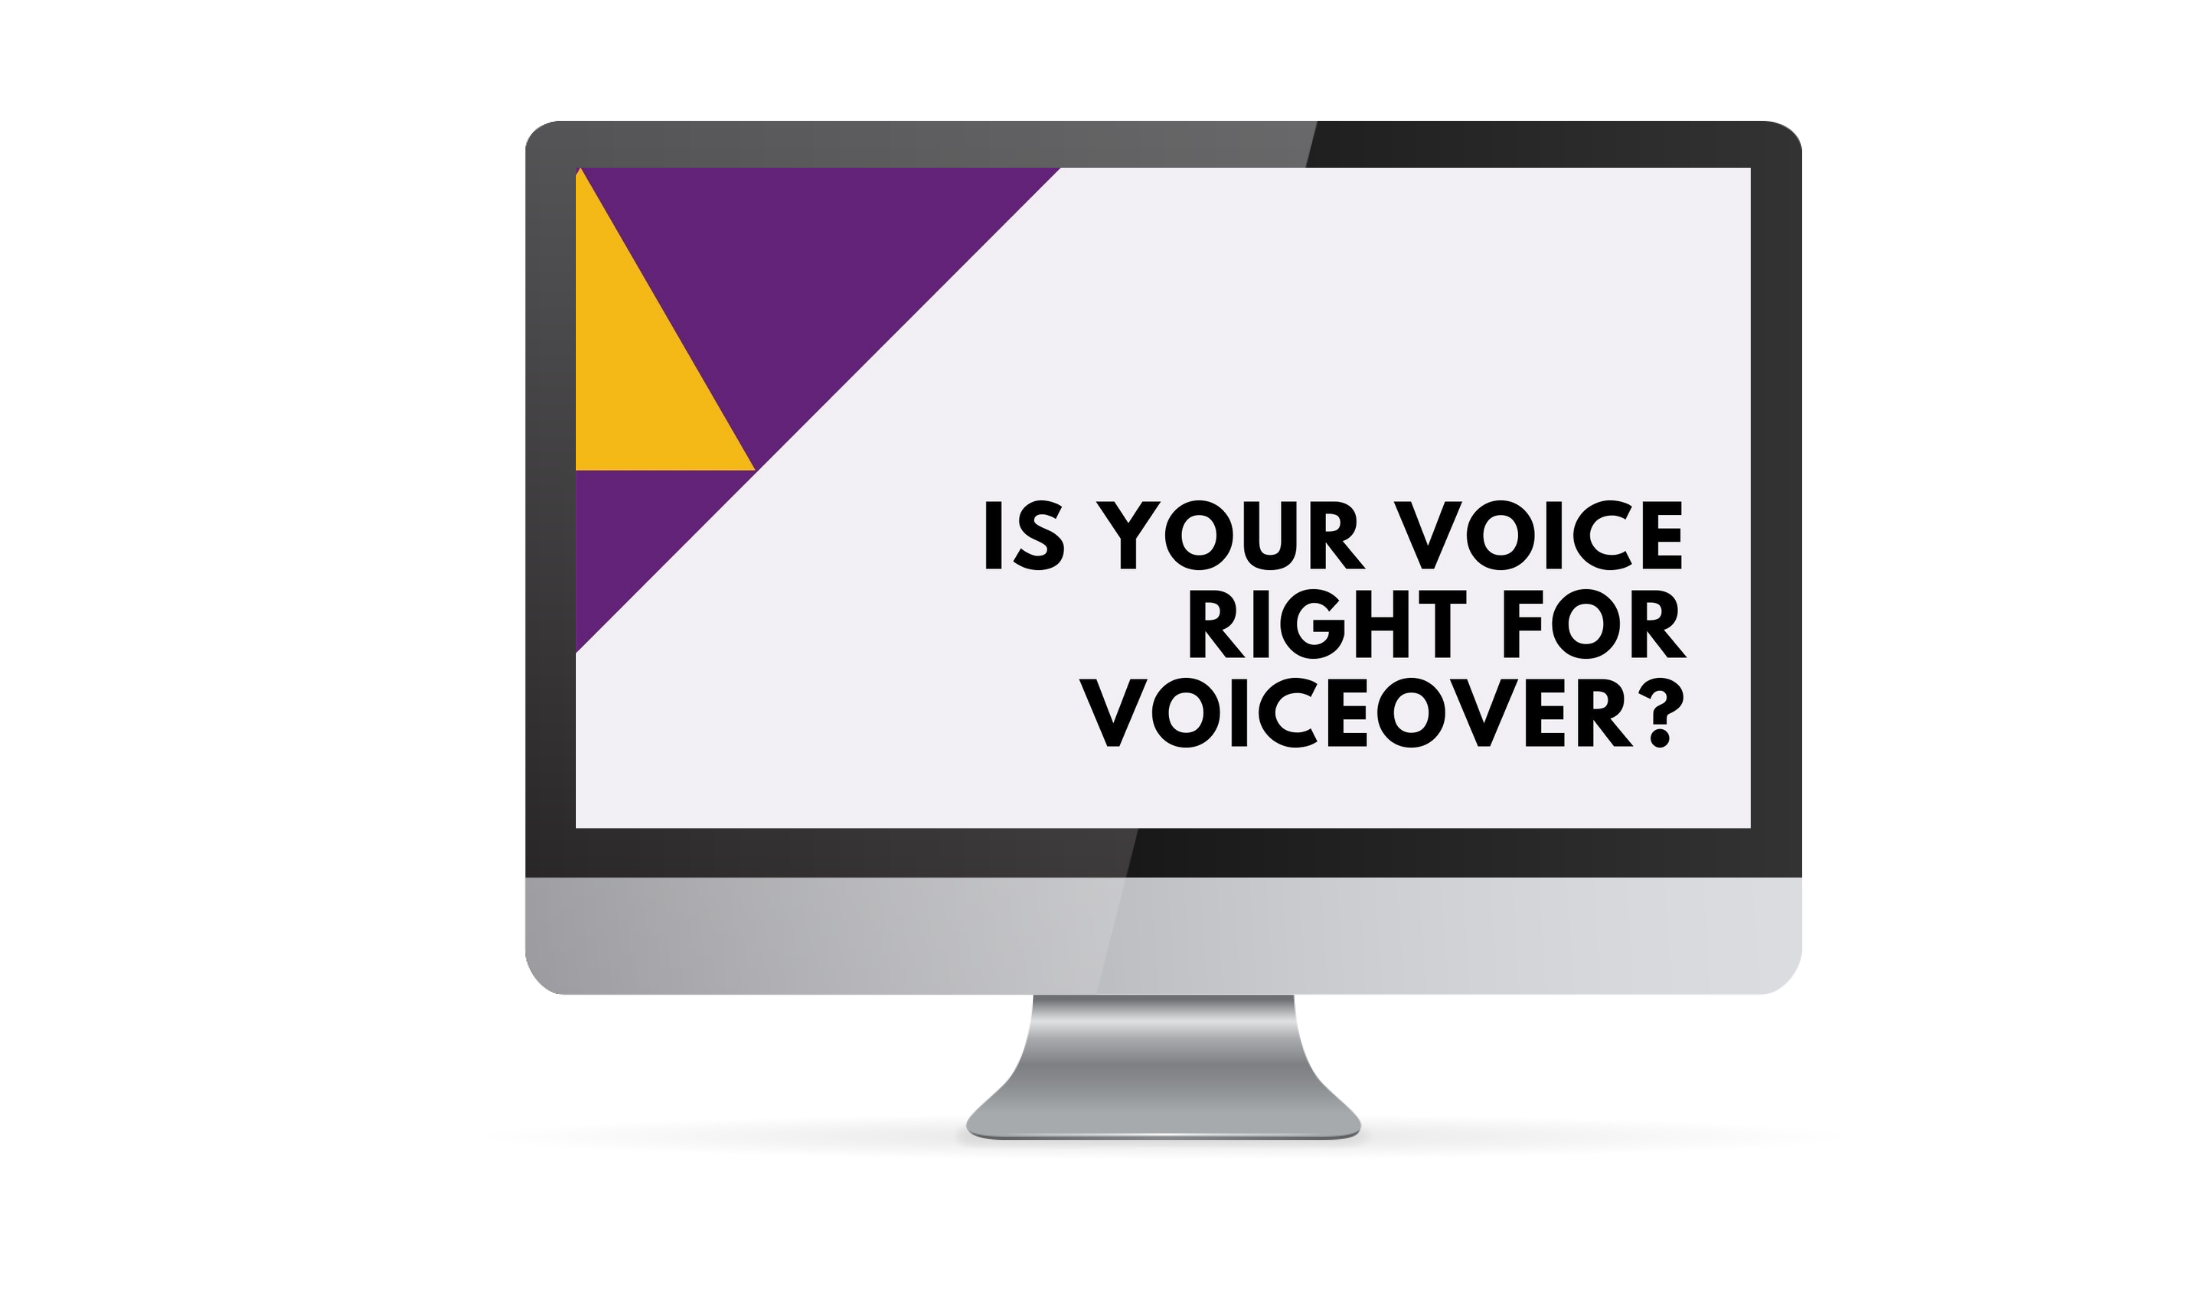 Is Your Voice Right for Voiceover?